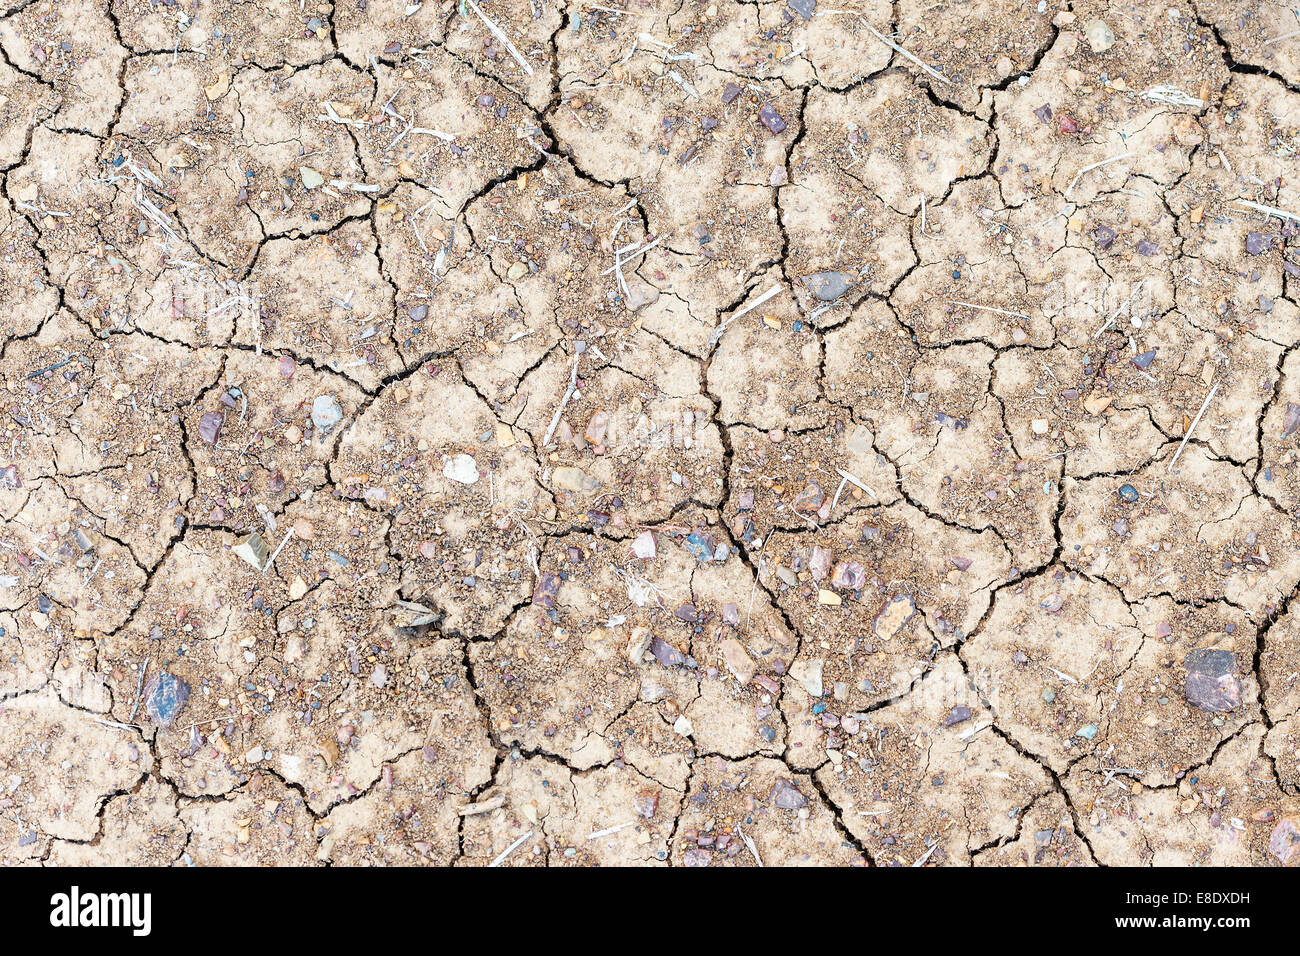 Image of parched ground in Tuscany, Italy - Stock Image